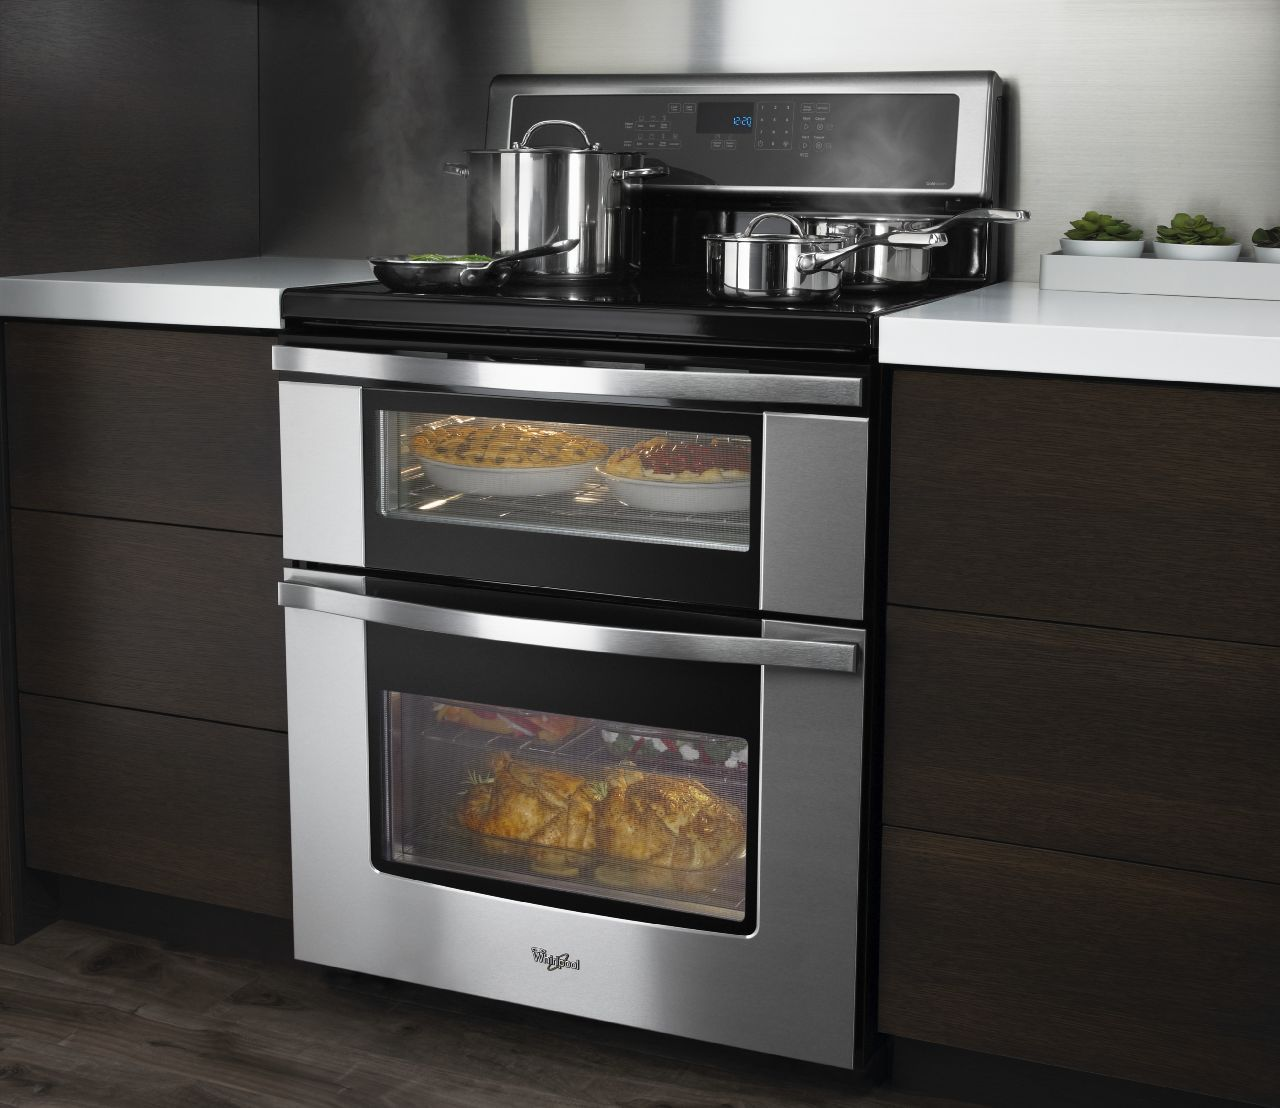 Whirlpool Double Oven Electric Range Whirlpool Brand Announces The